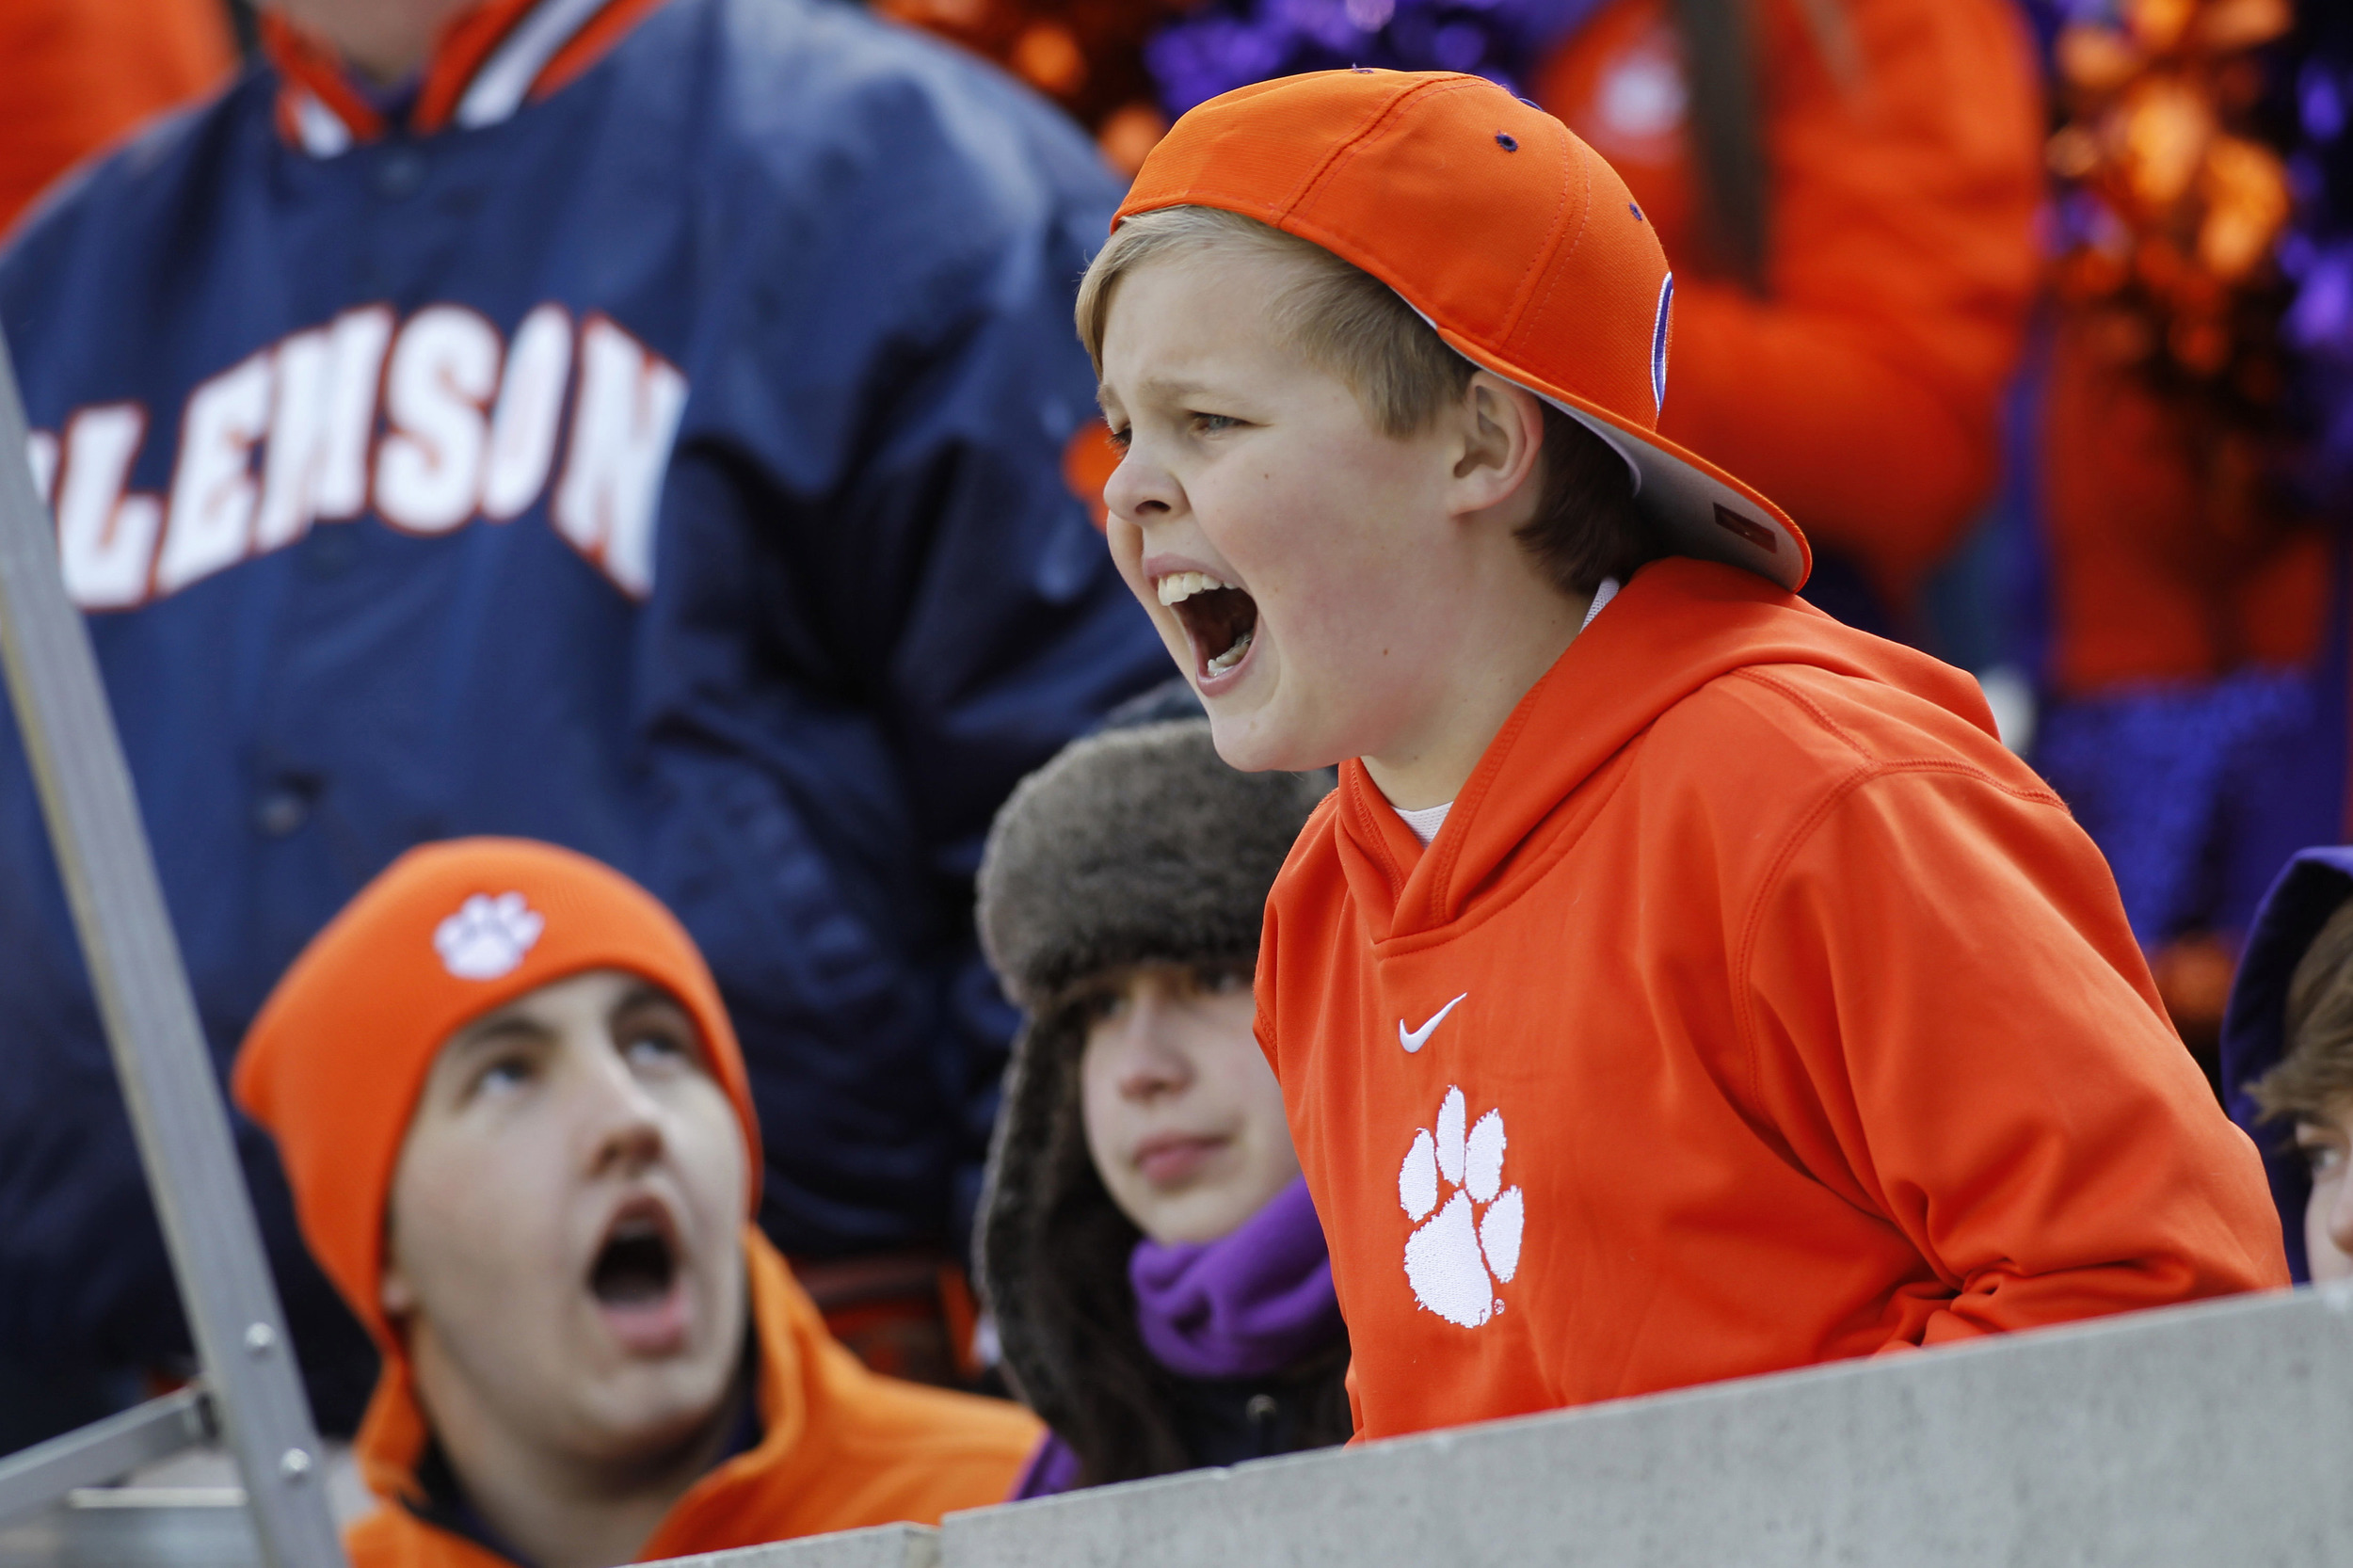 Ah, looks like we got ourselves a junior Dabo! That's some nice whinin' there, kid/